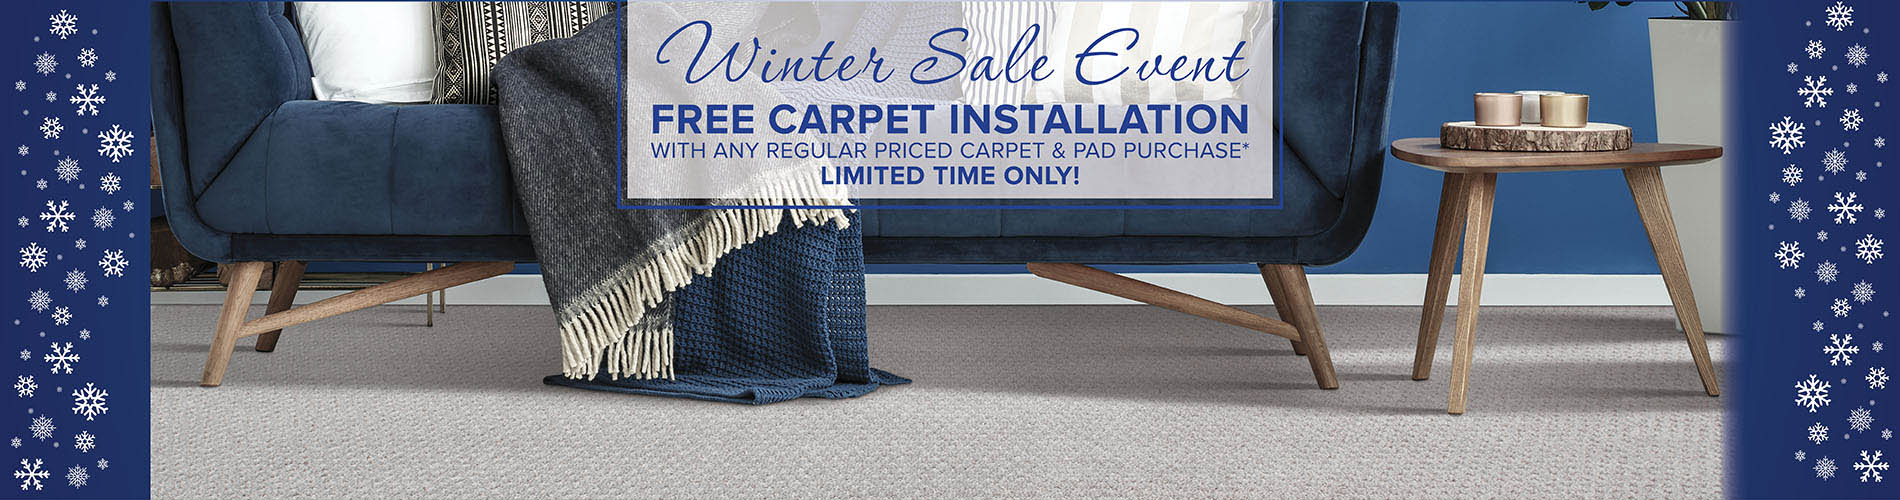 Free carpet installation with any regular priced carpet & pad purchase for a limited time only!